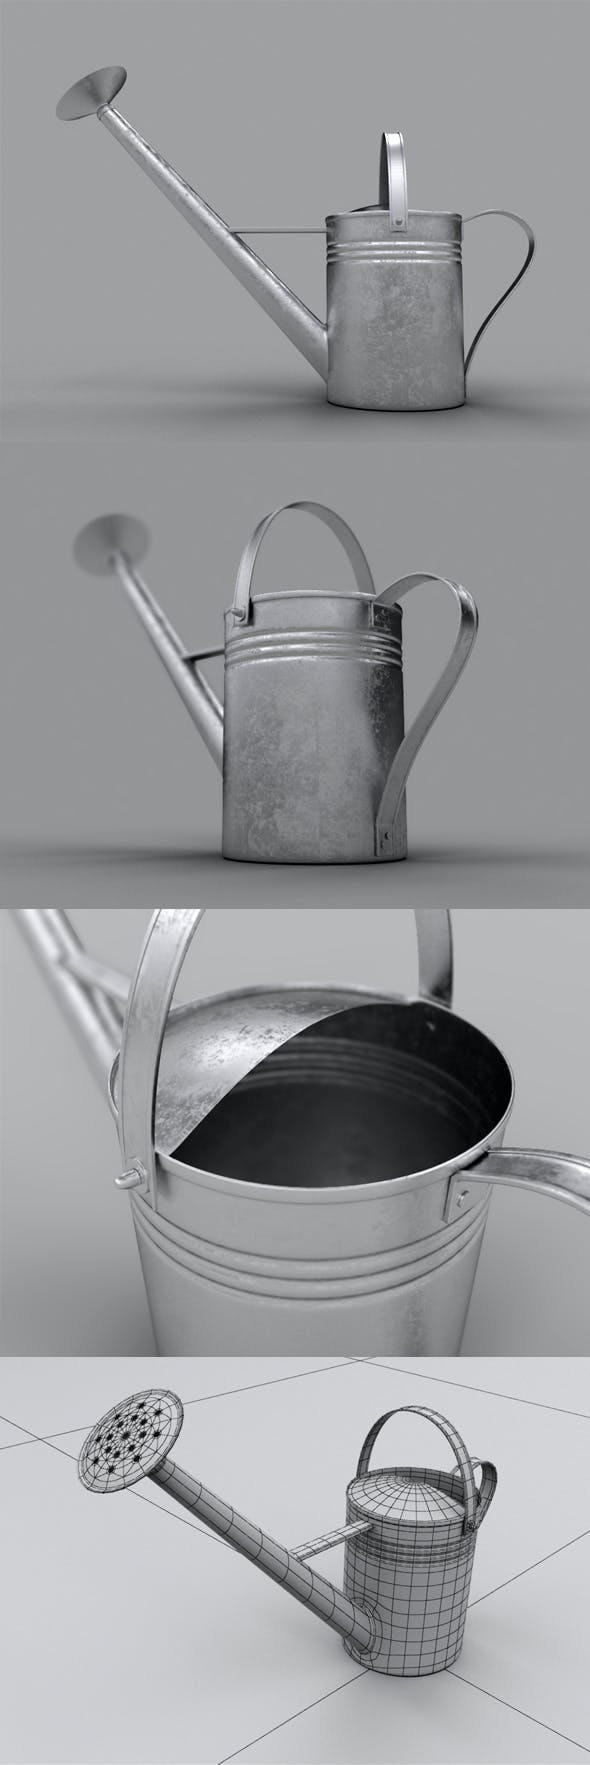 Realistic Watering Can - 3DOcean Item for Sale